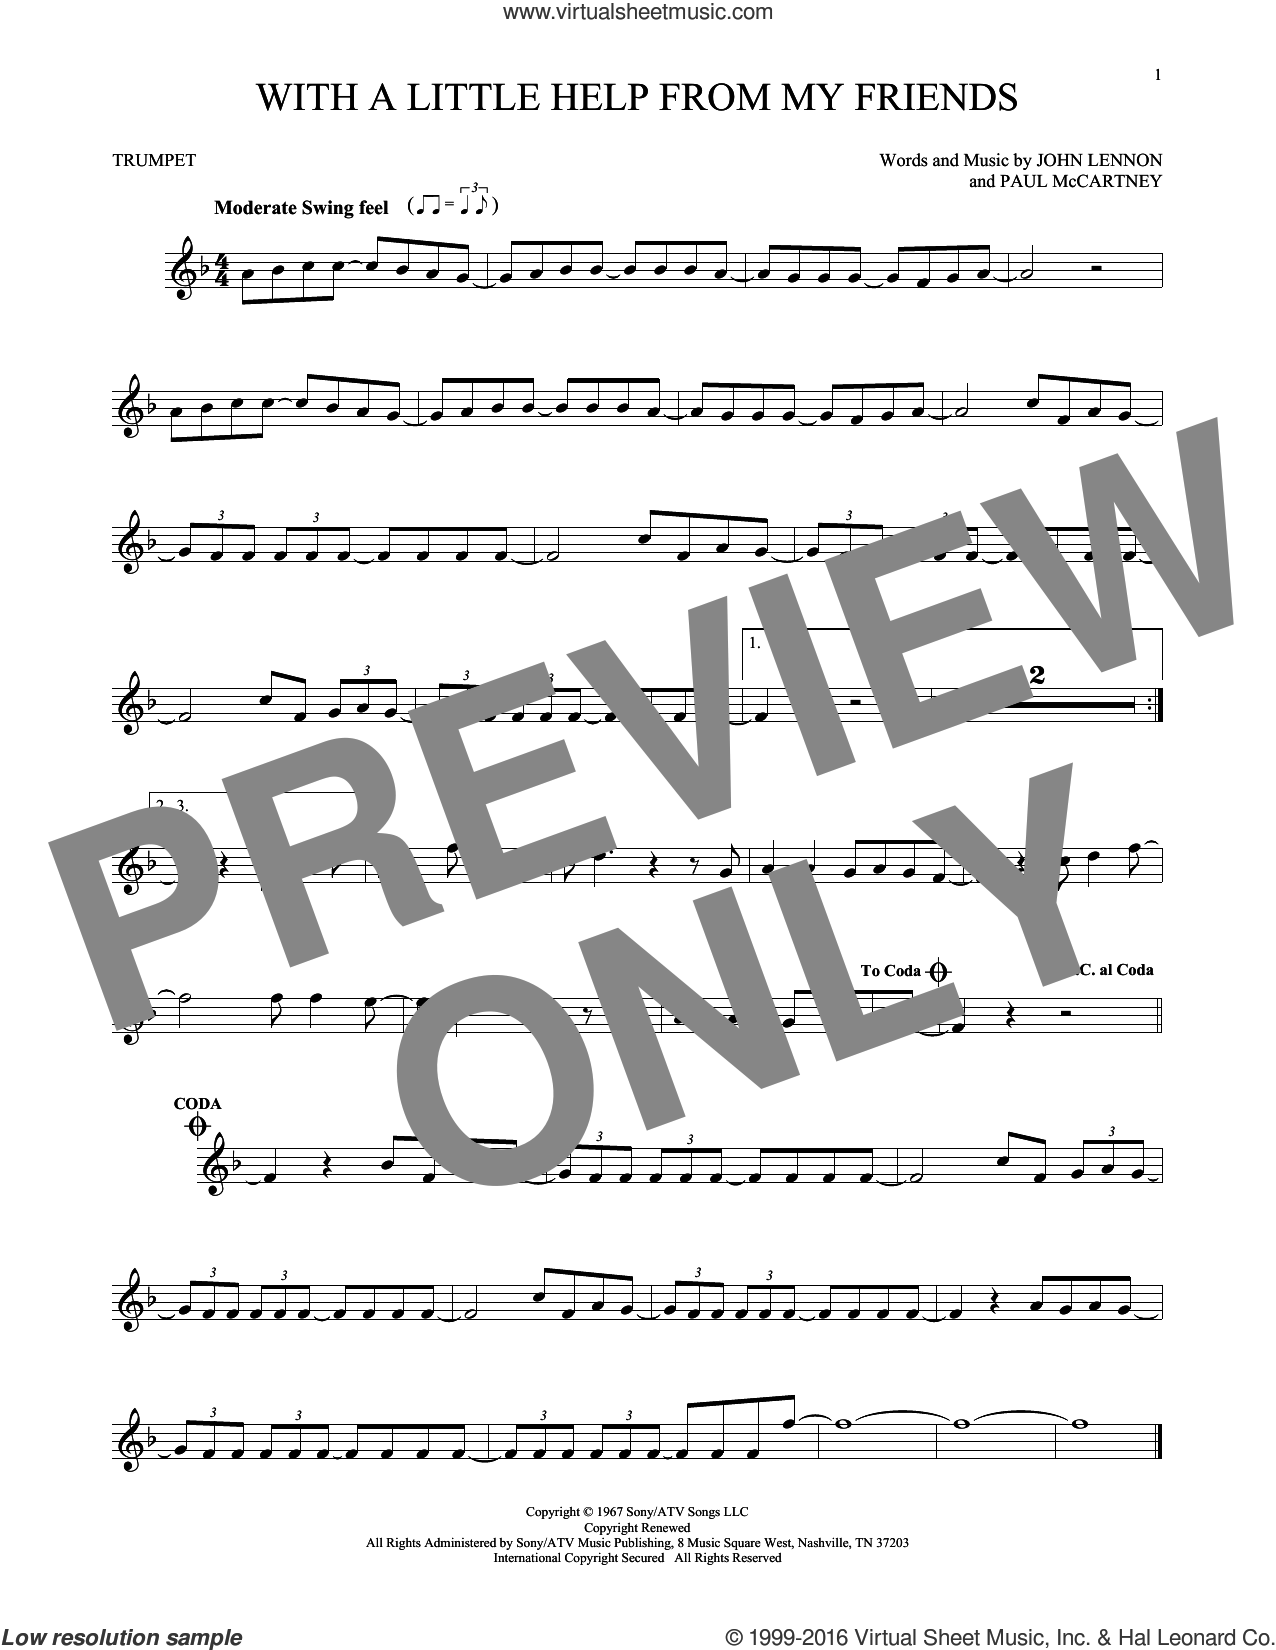 With A Little Help From My Friends sheet music for trumpet solo by The Beatles, Joe Cocker, Sam And Mark, John Lennon and Paul McCartney, intermediate skill level